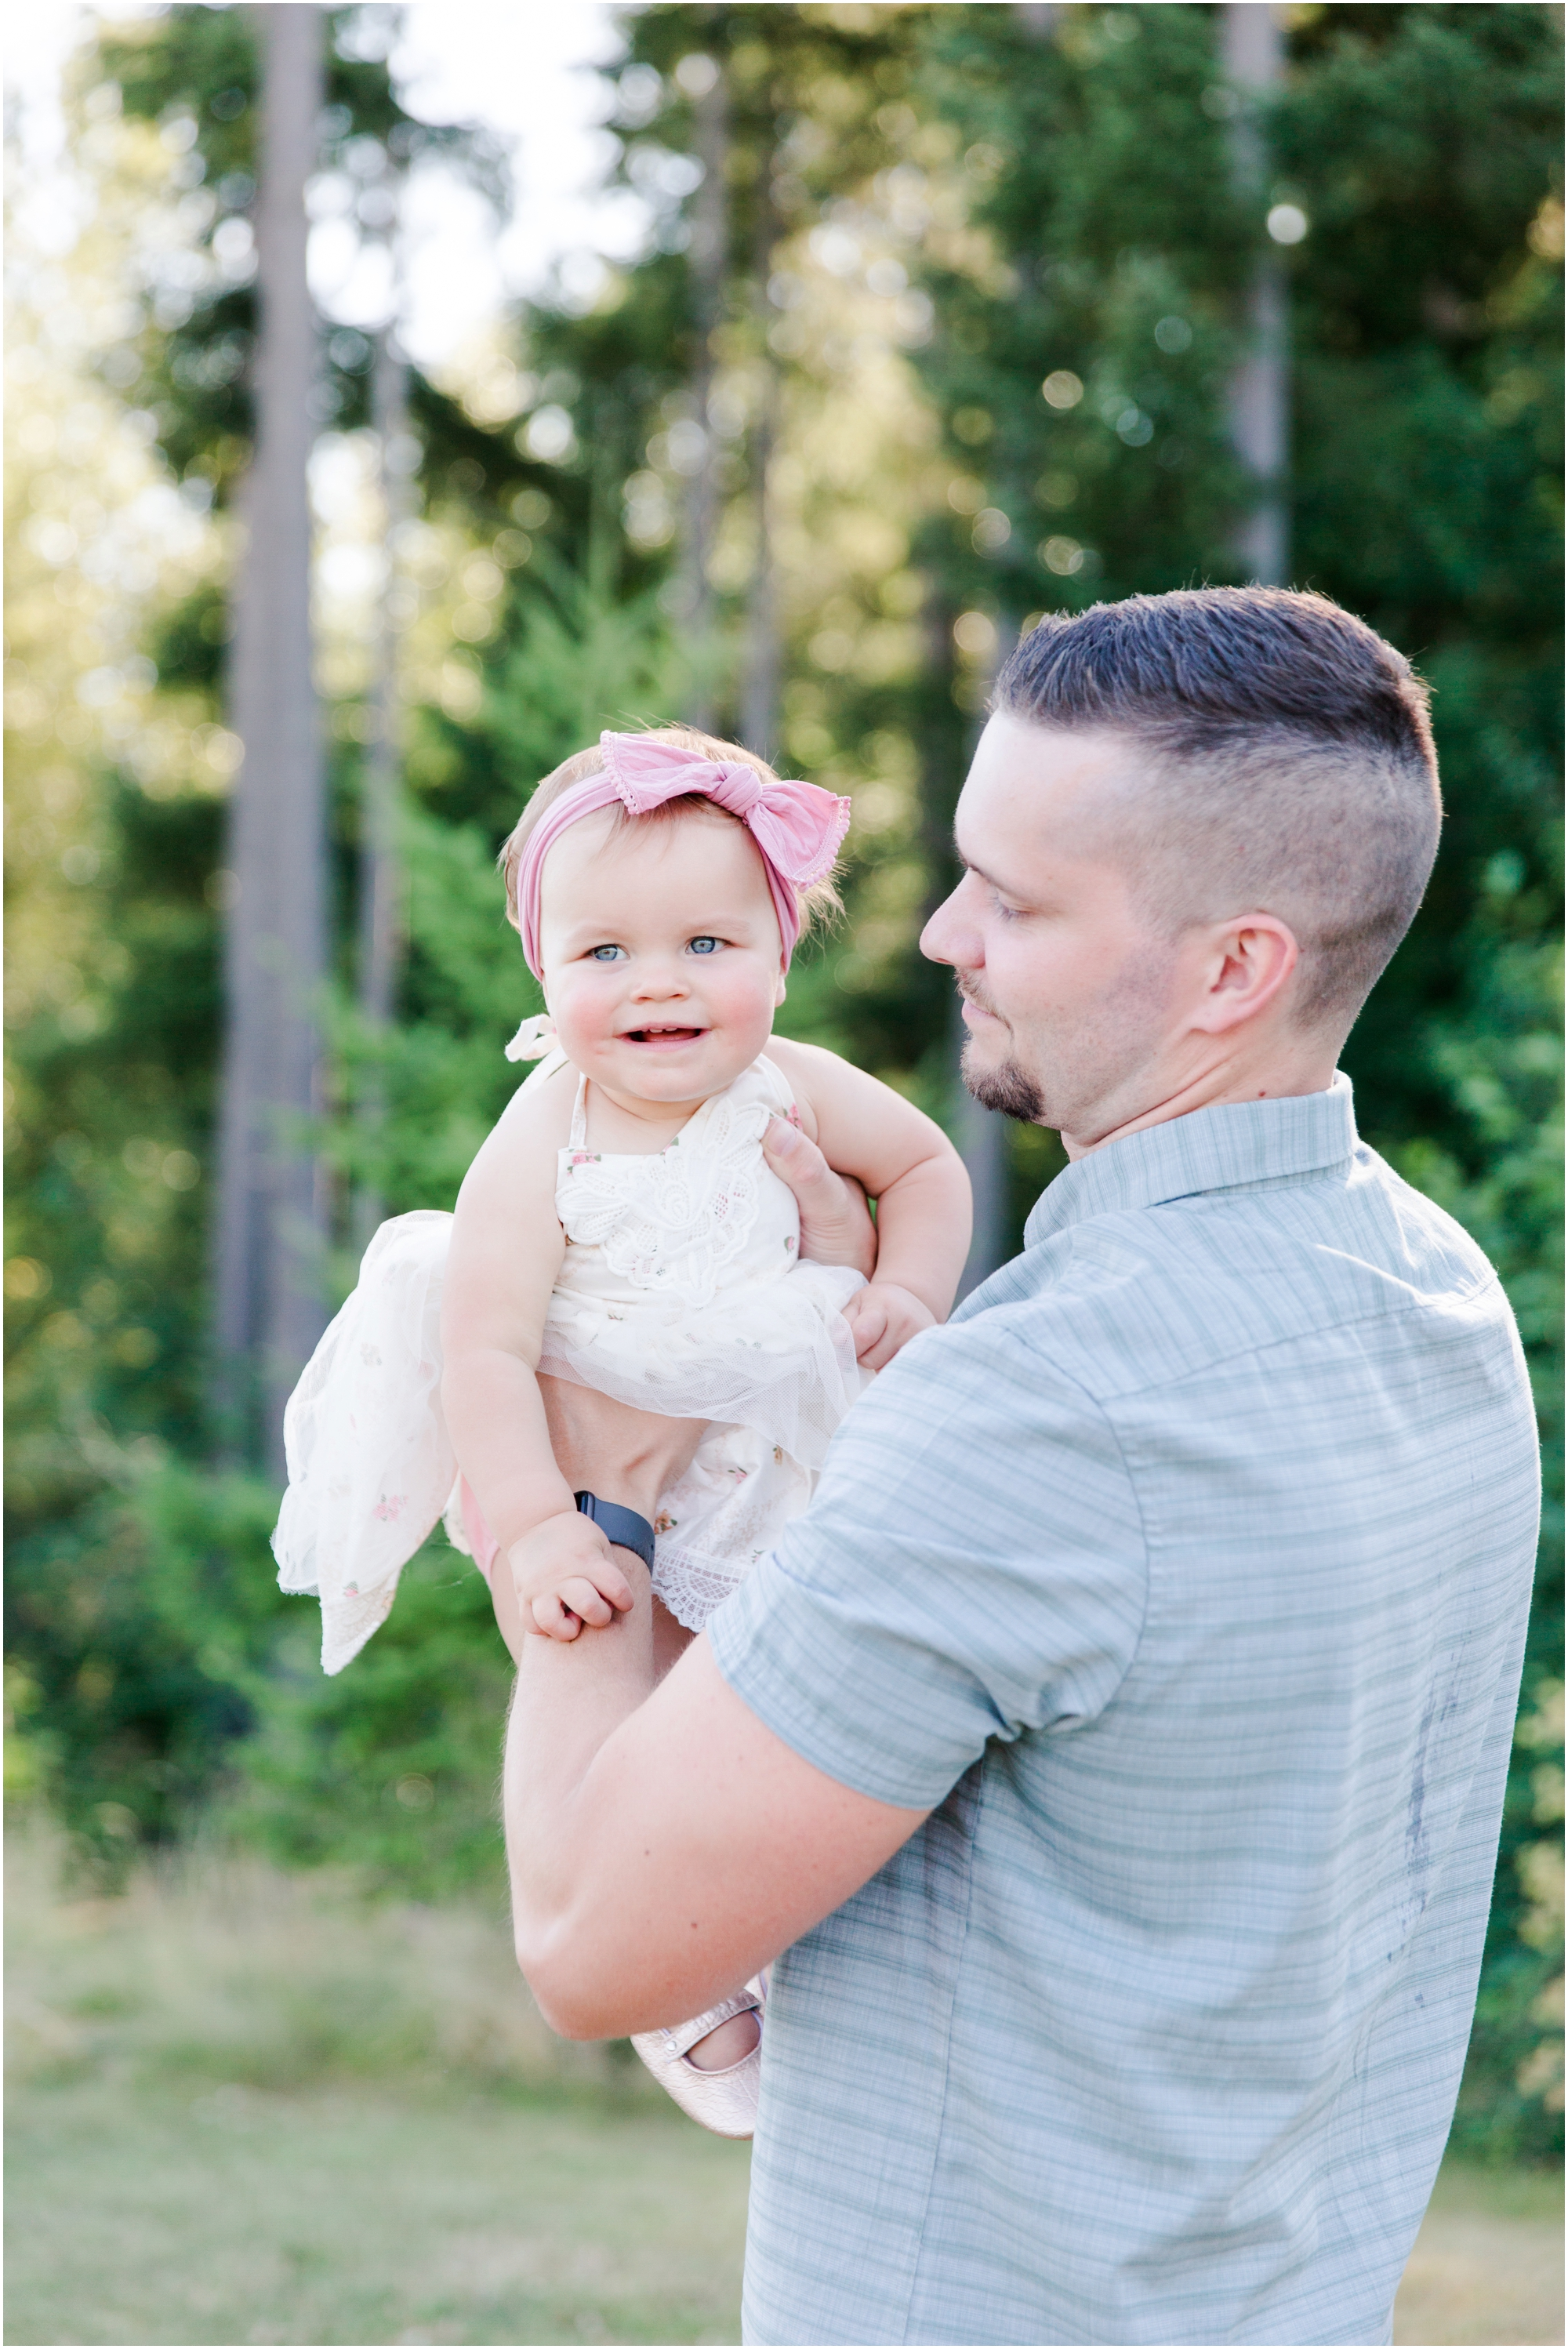 One year old photos by Briana Calderon Photography based in the Greater Seattle & Tacoma, WA_0686.jpg